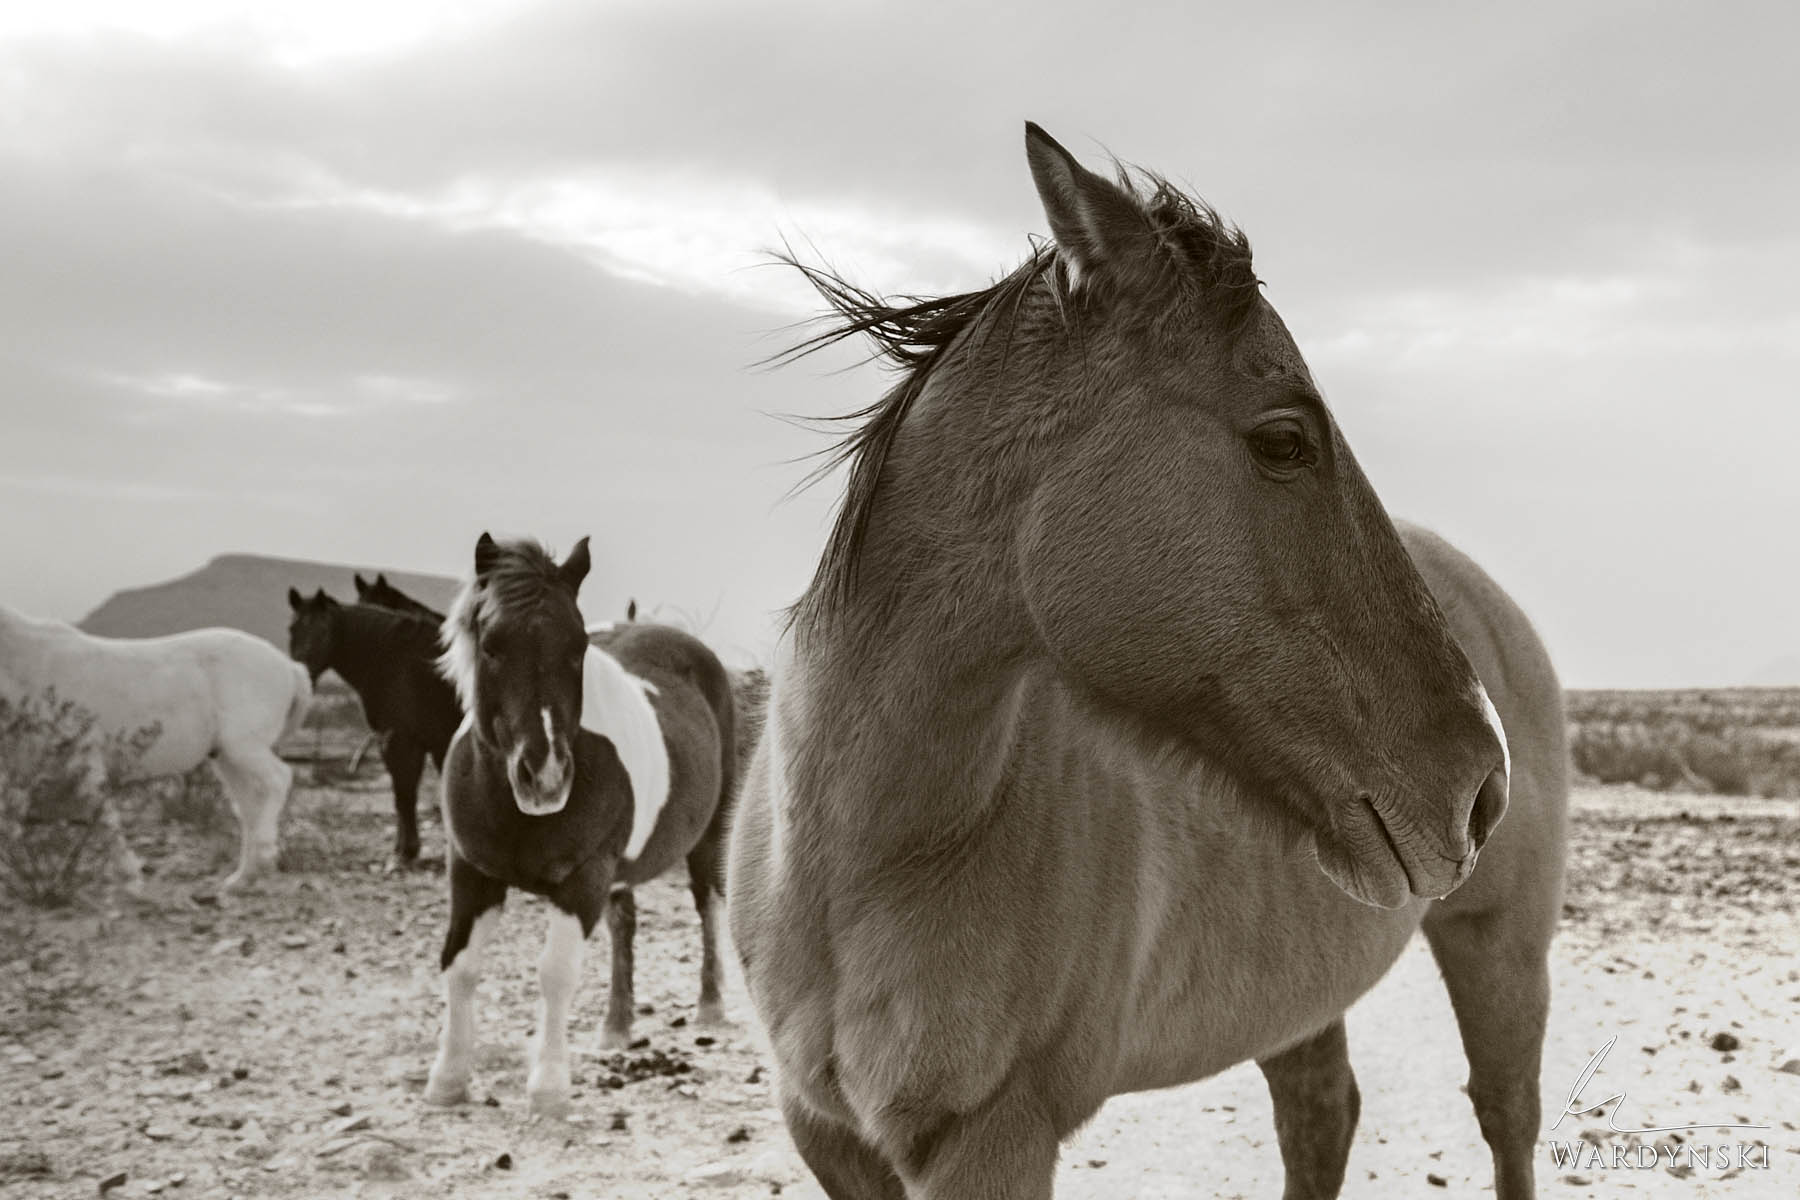 Sepia Fine Art Print | Limited Edition of 25  A wise horse stands in the Texas desert while wind whips through the open plains...